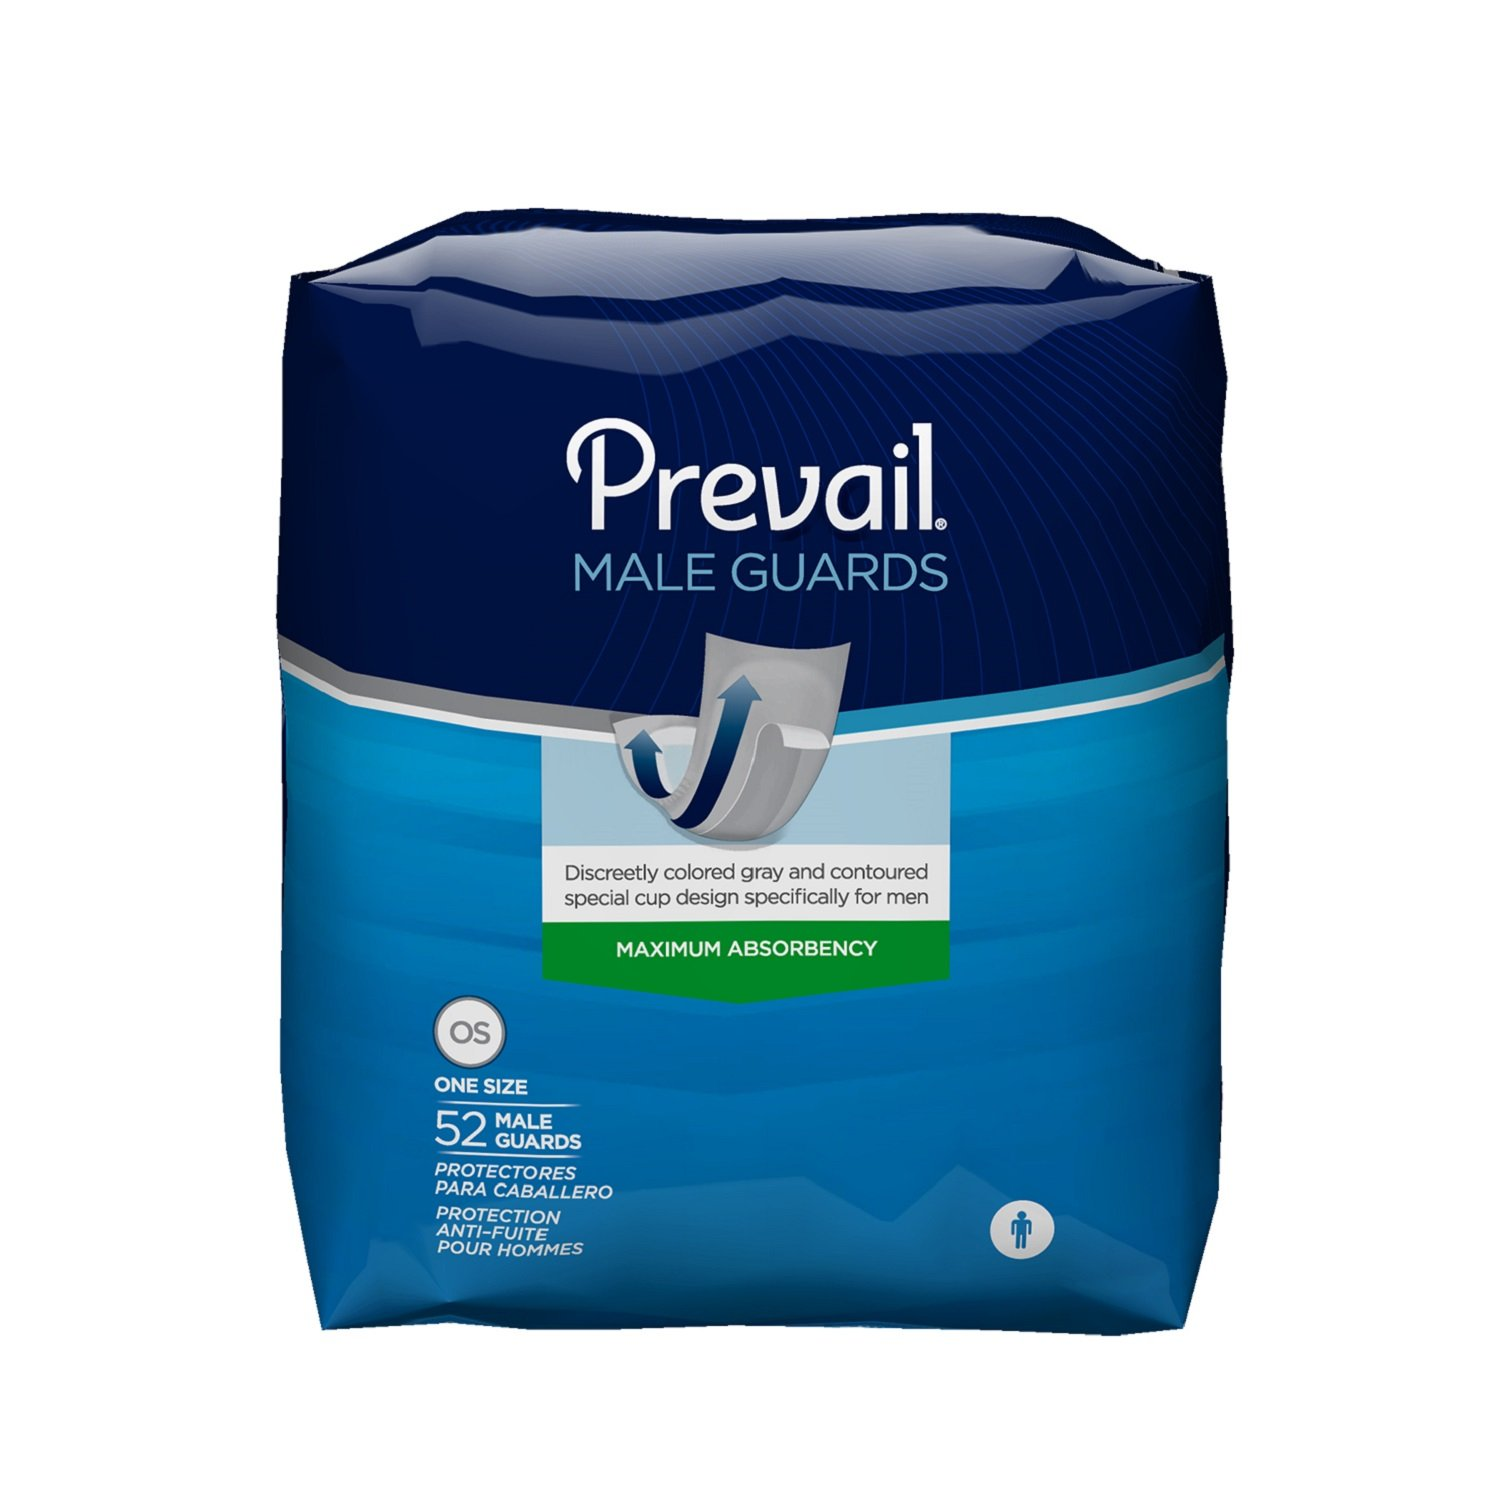 Prevail Maximum Absorbency Incontinence Male Guards, One Size, 52-Count